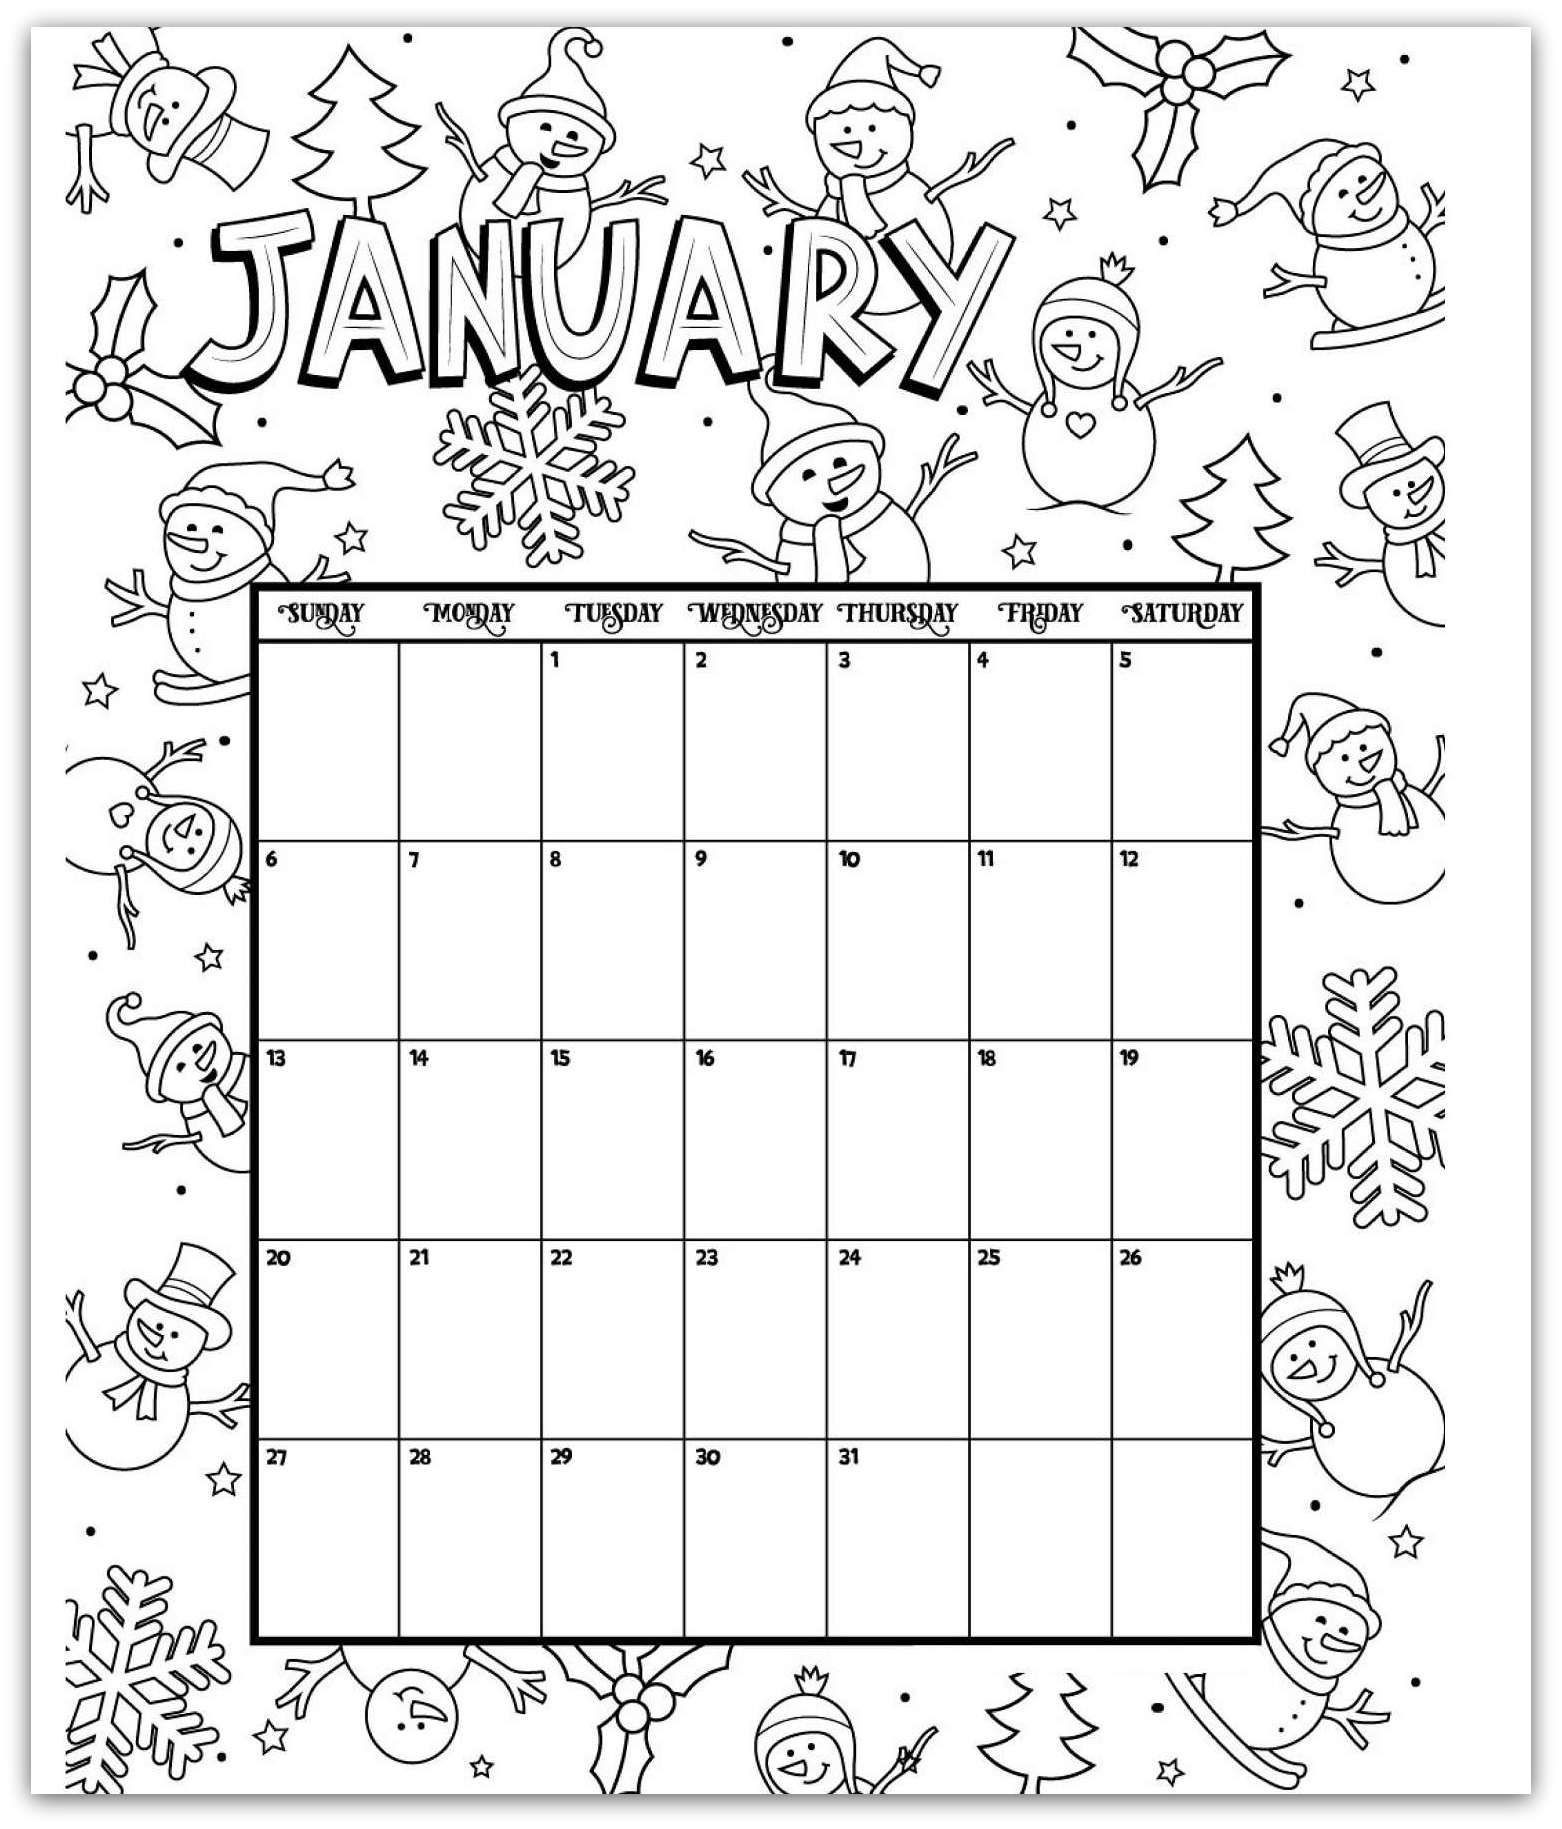 january 2019 coloring page printable calendar